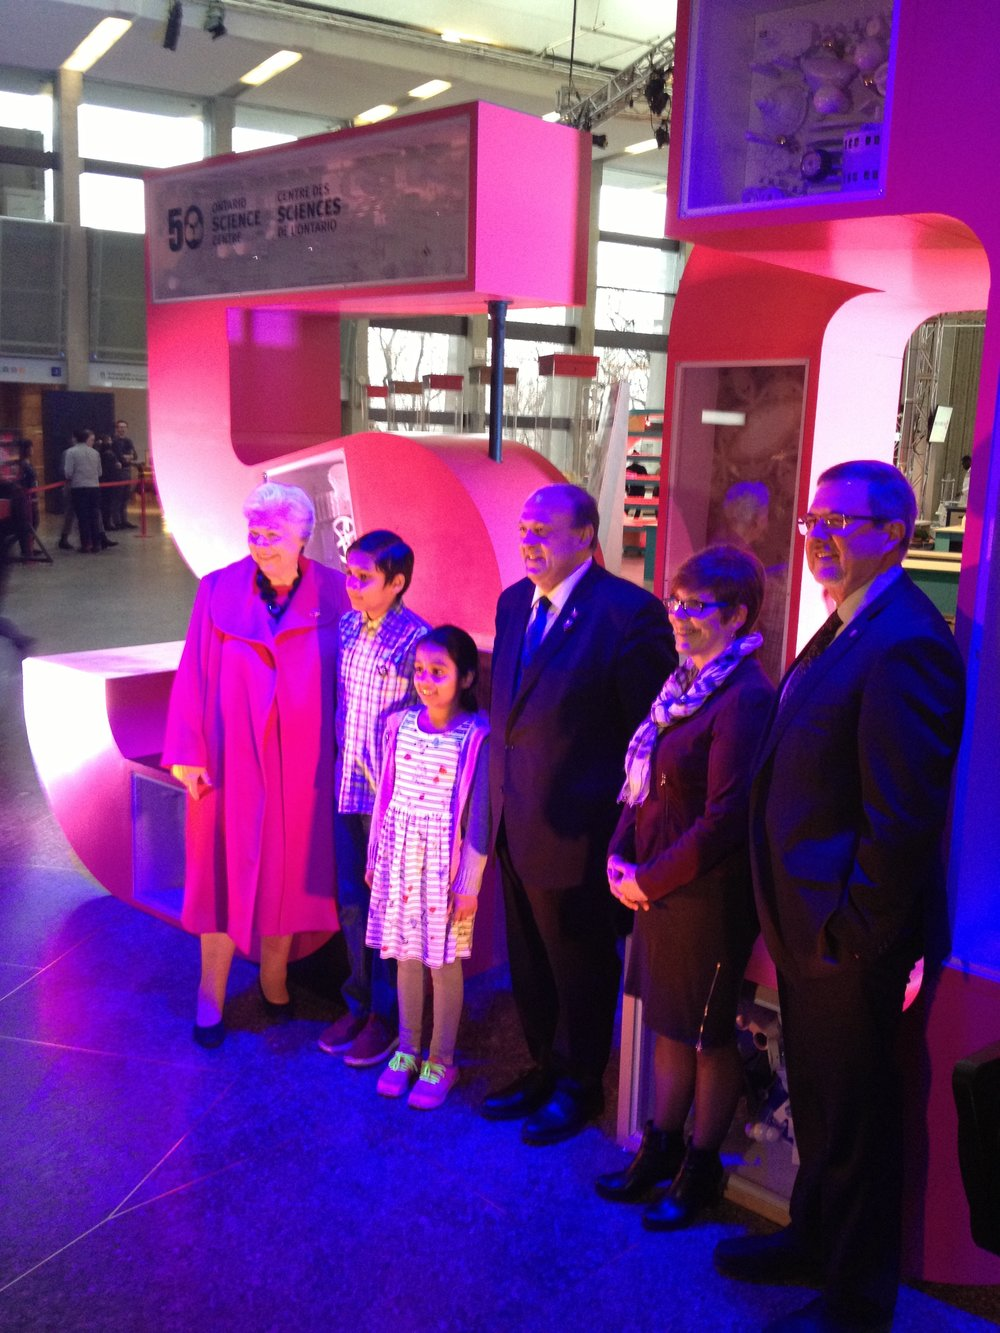 The Hon. Elizabeth Dowdeswell (far left) inaugurating Inventorium 2.0 and the Science Centre's 50th Anniversary Celebrations with various dignitaries .